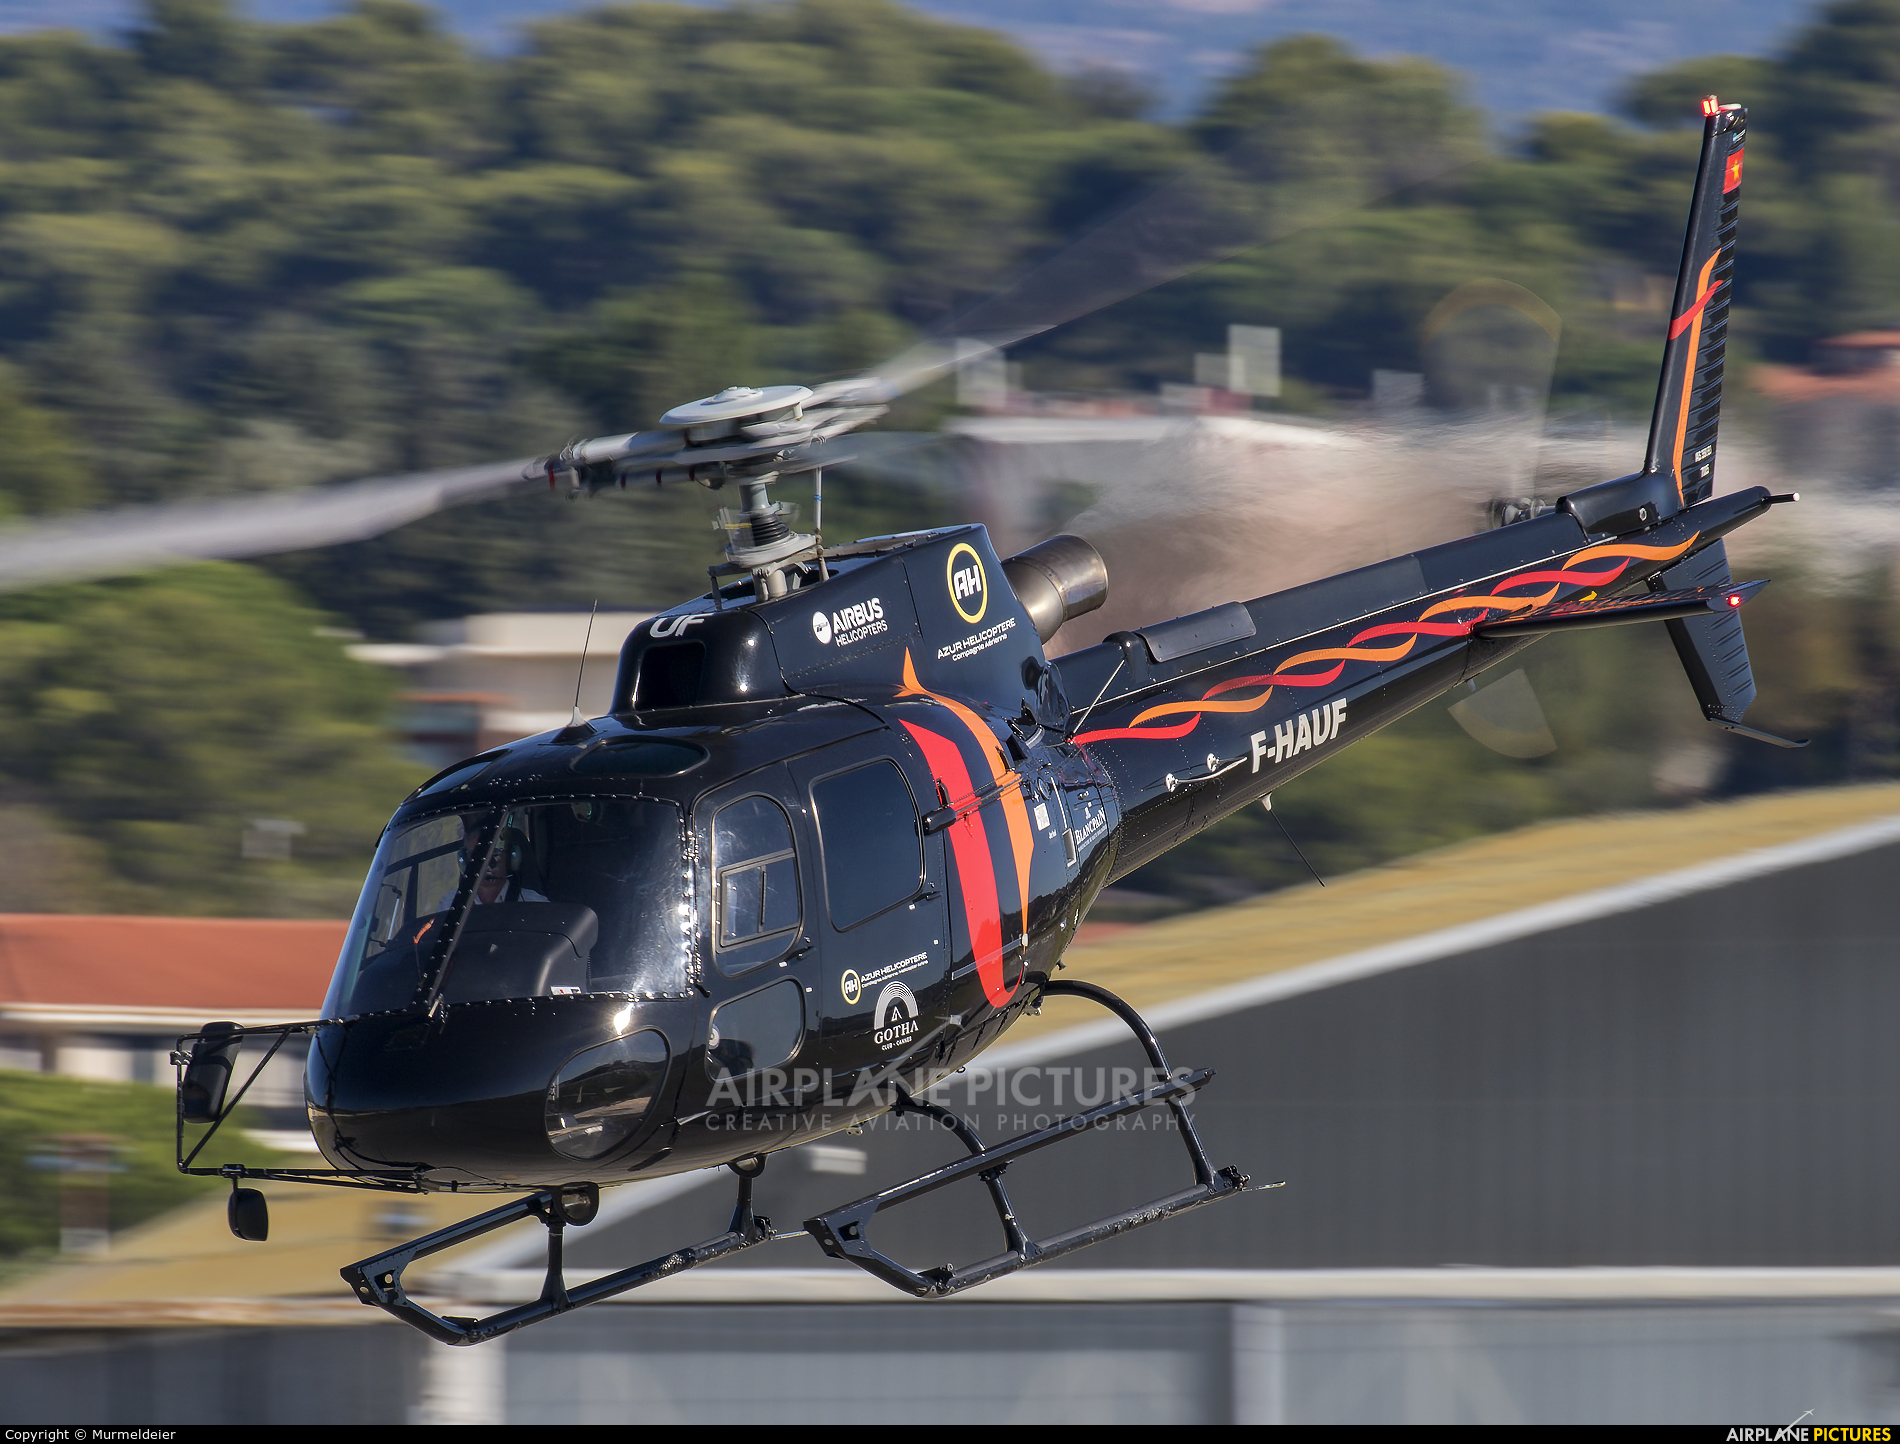 Azur Helicoptere F-HAUF aircraft at Cannes - Mandelieu